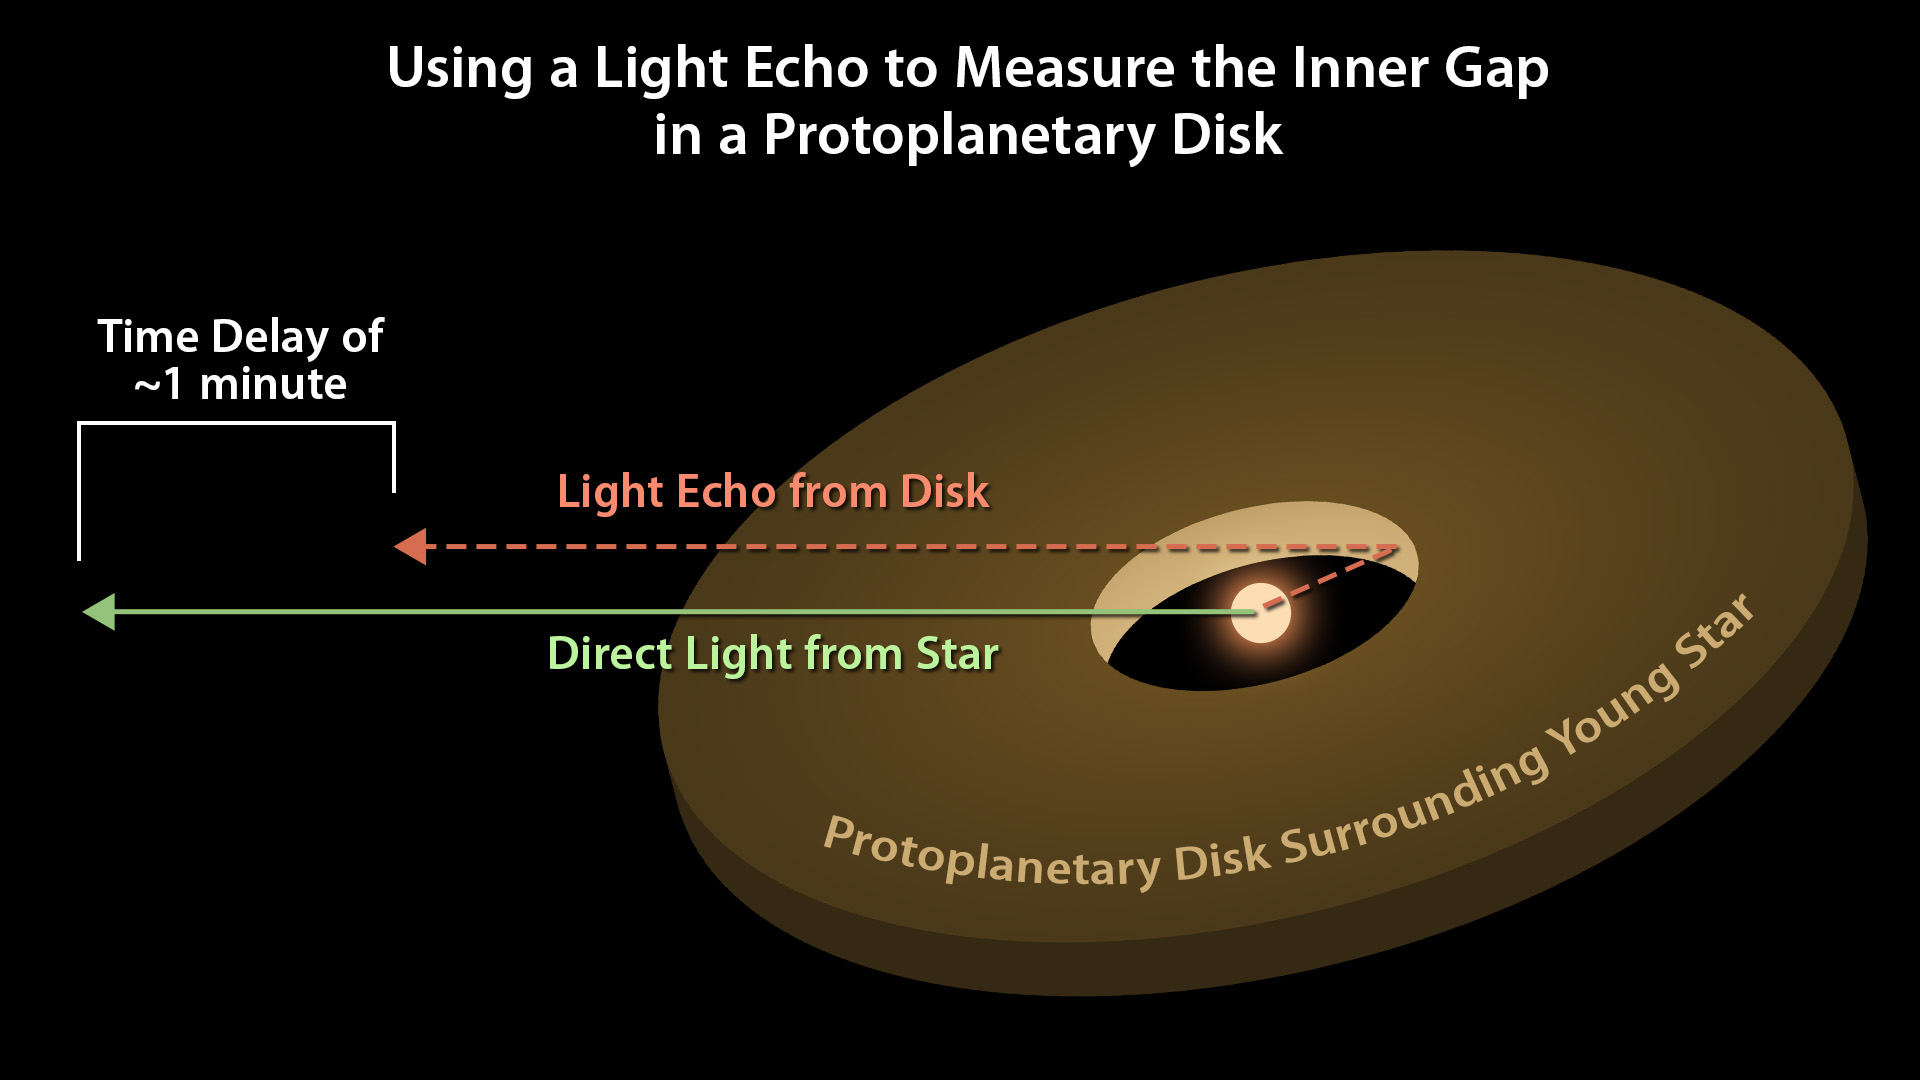 Astronomers can use light echoes to measure the distance from a star to its surrounding protoplanetary disk. This diagram illustrates how the time delay of the light echo is proportional to the distance between the star and the inner edge of the disk. – Image Credits: NASA/JPL-Caltech